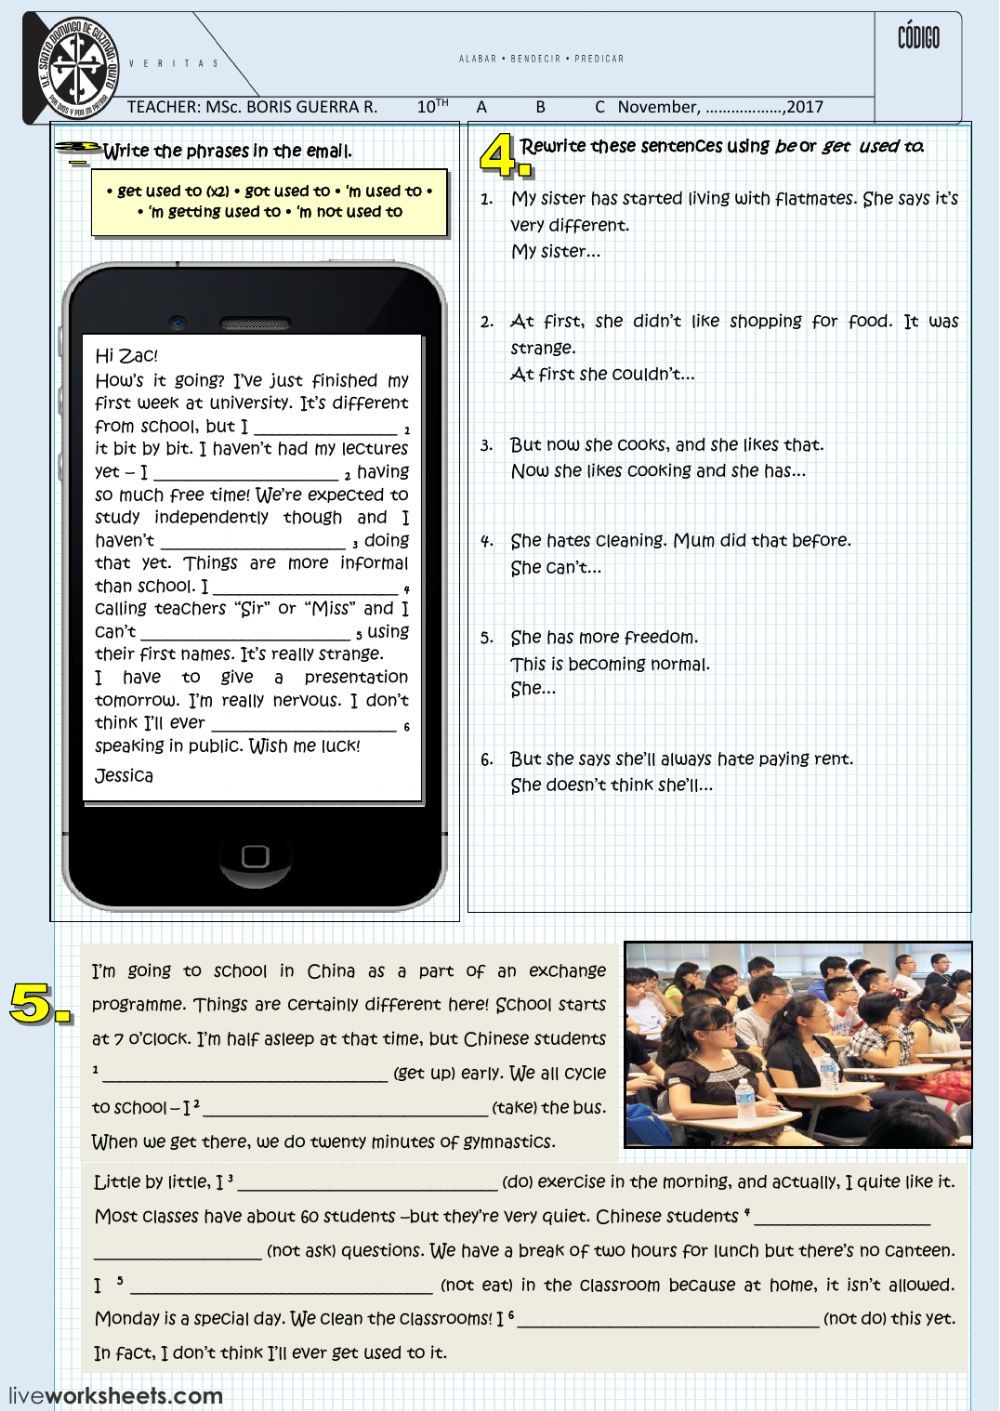 USED TO interactive and downloadable worksheet. You can do ...